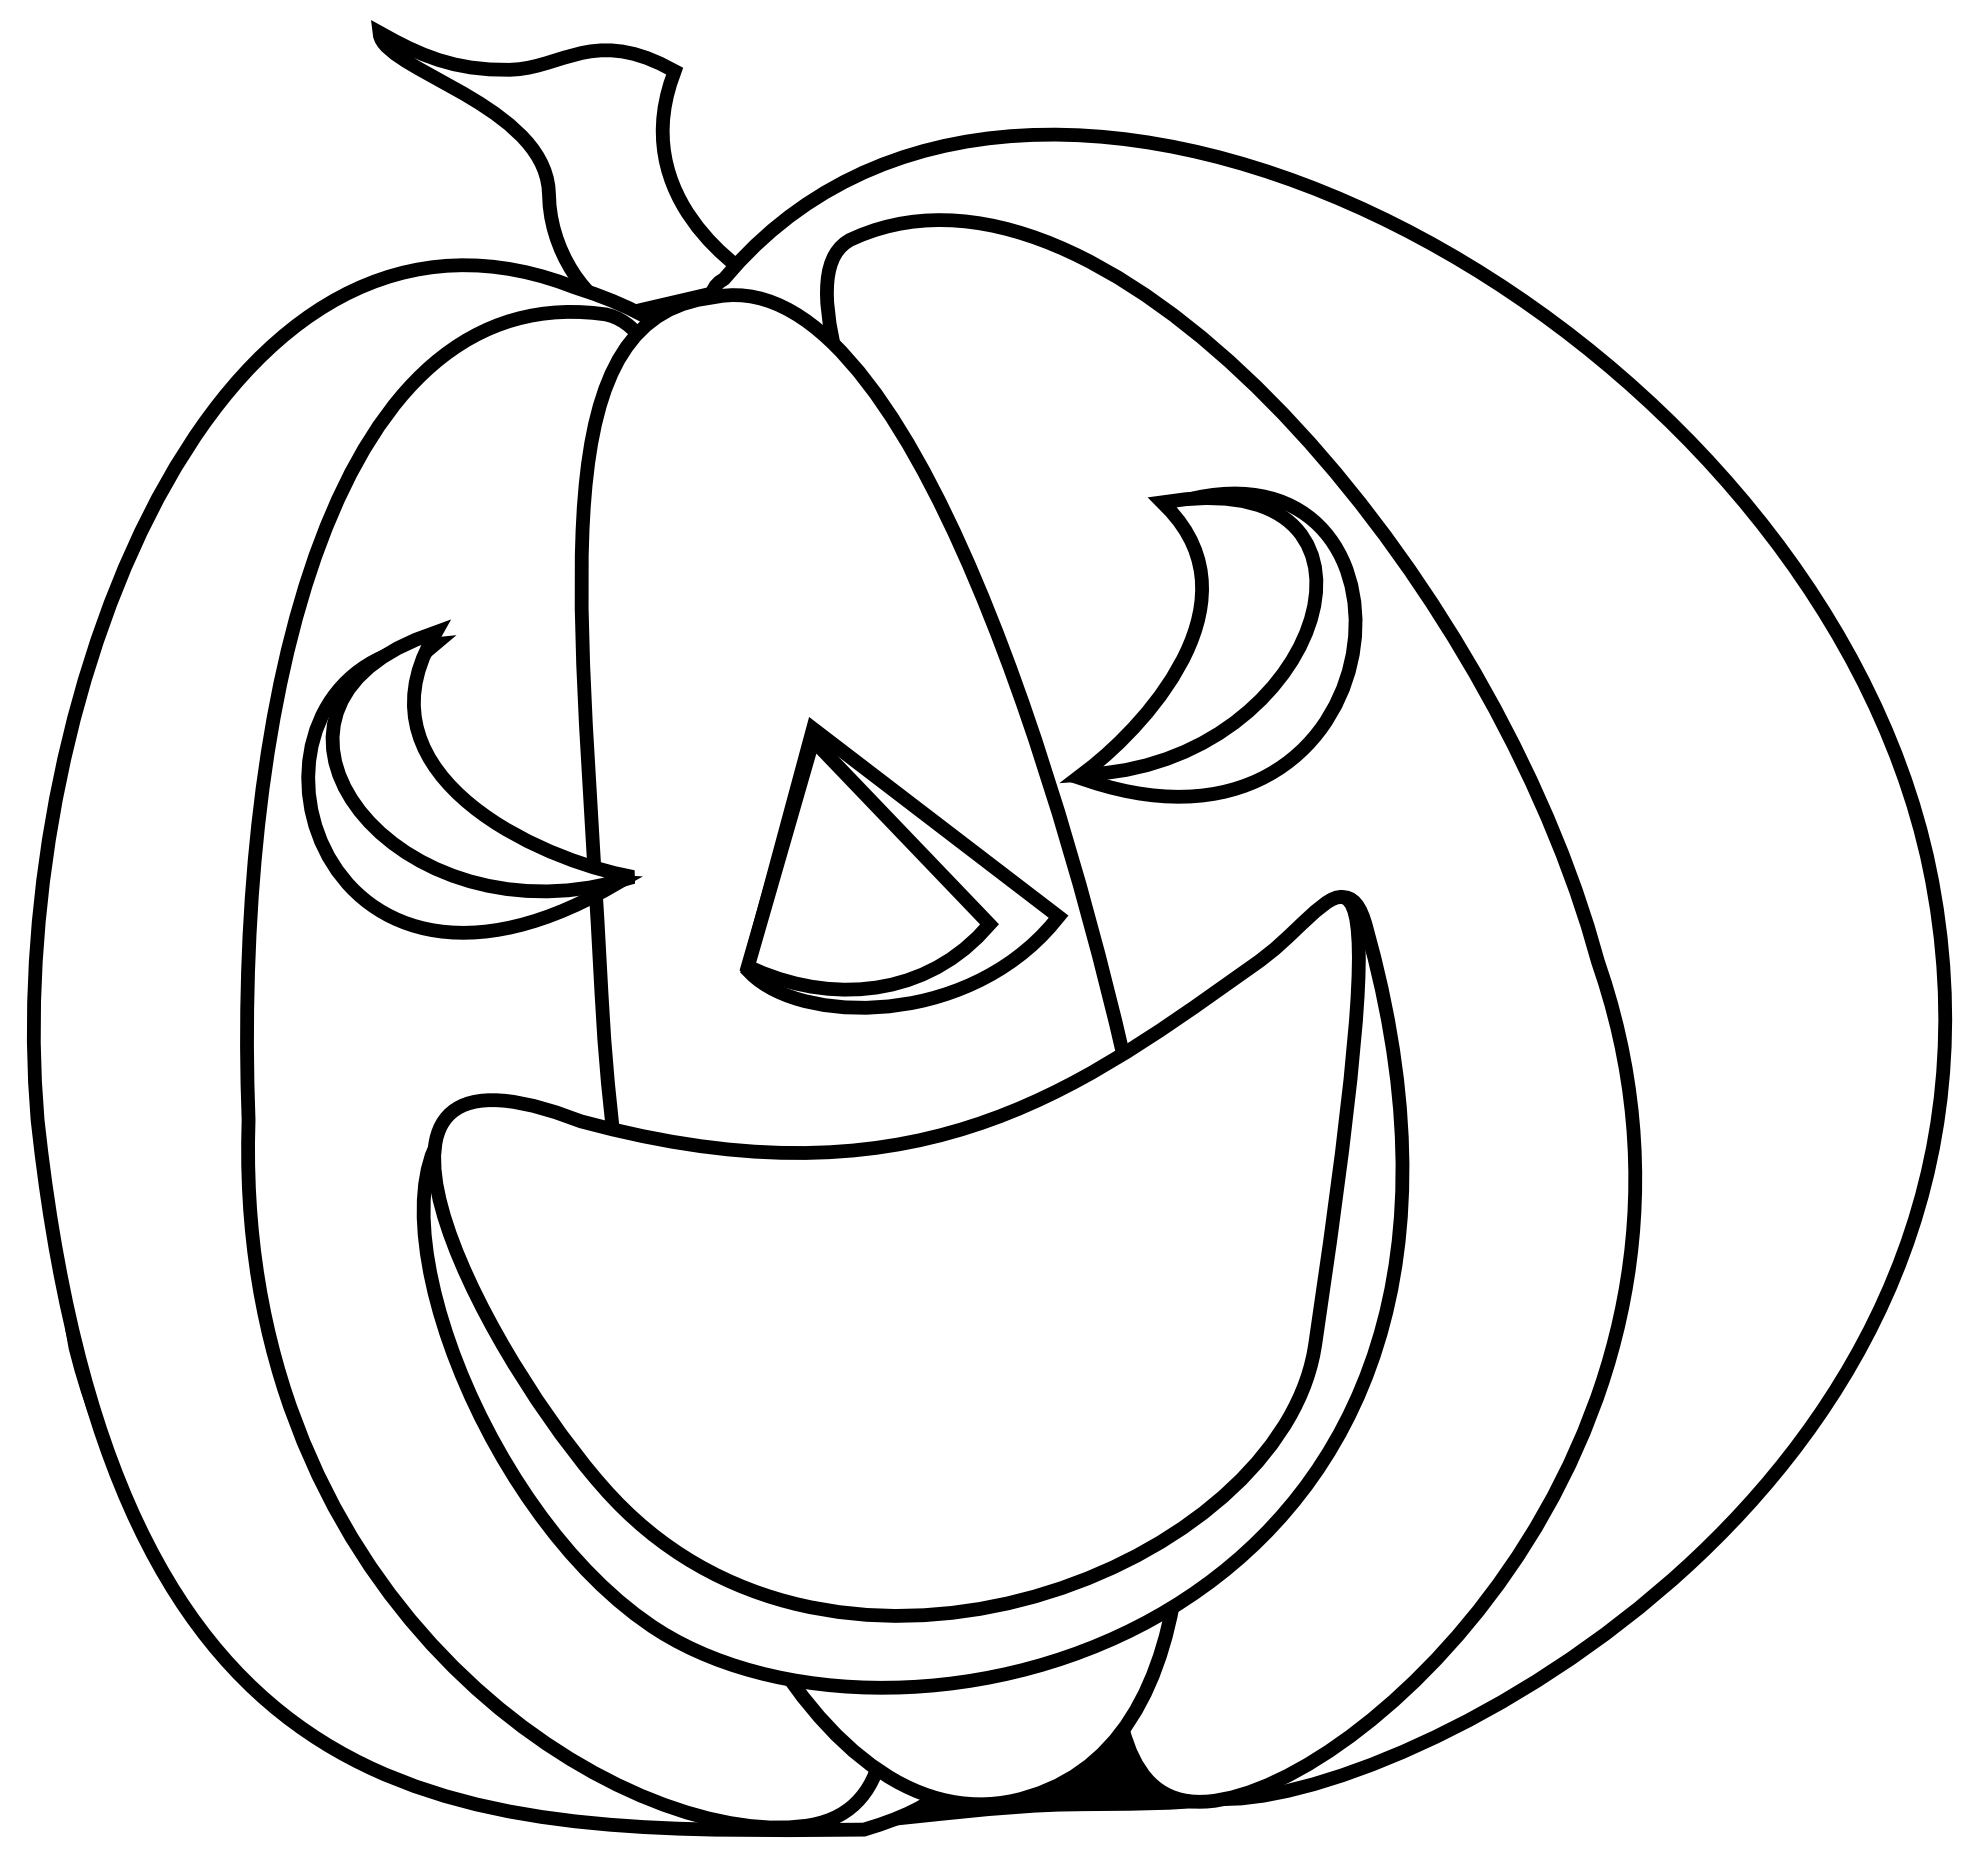 Easy spooky pumpkin clipart black and white.  collection of halloween